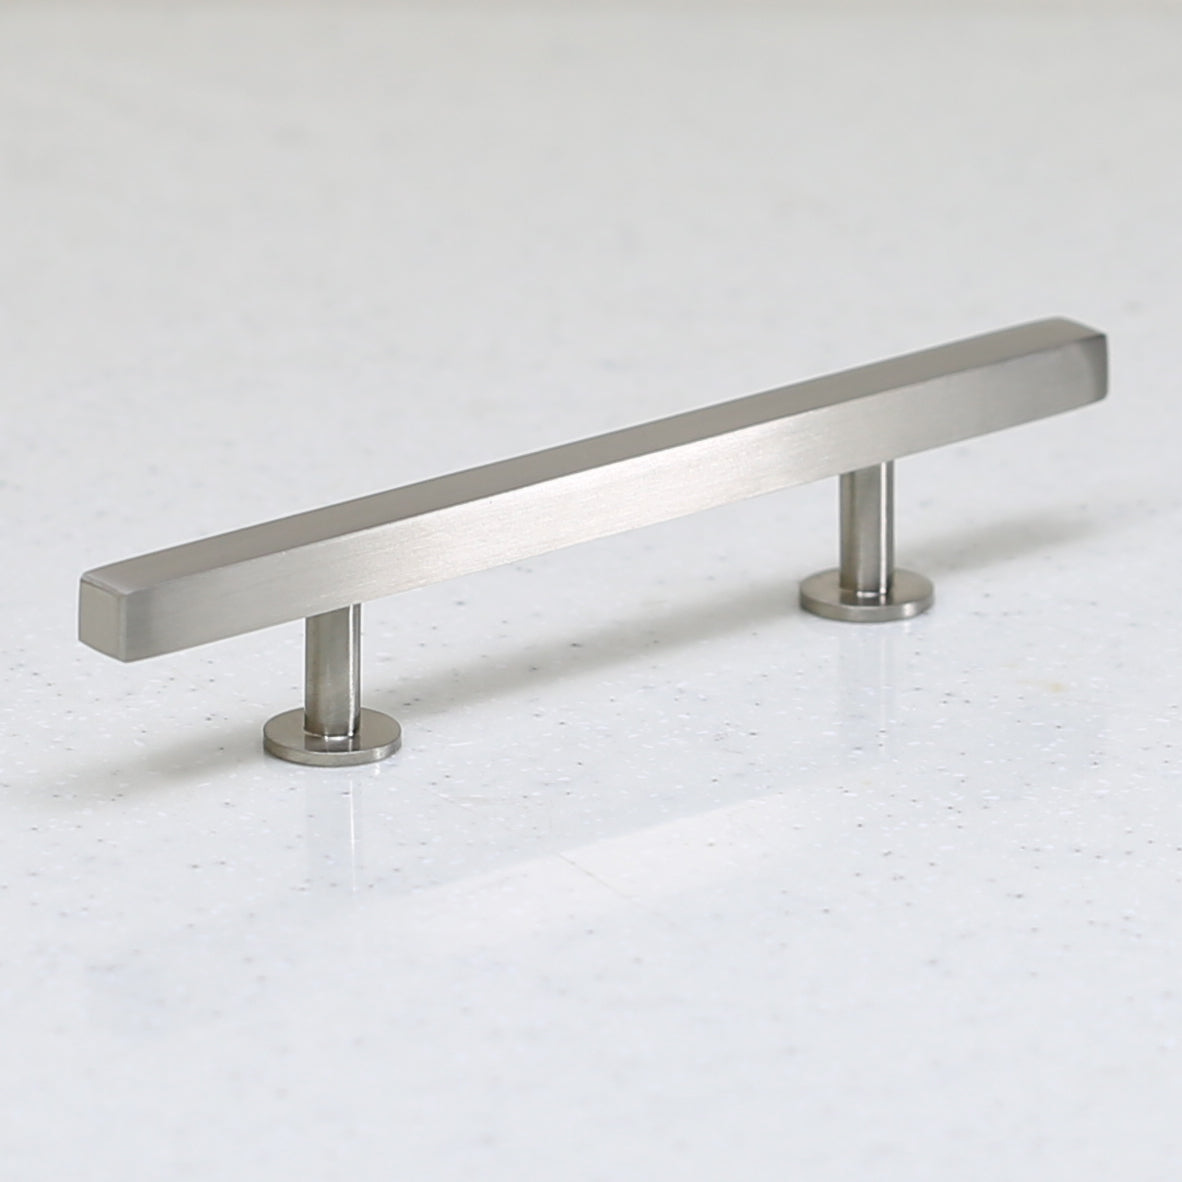 "The Vouvant Collection Pull - 96mm Center to Center (3-3/4"") - Satin Nickel - Handle Pull Decorative Hardware"